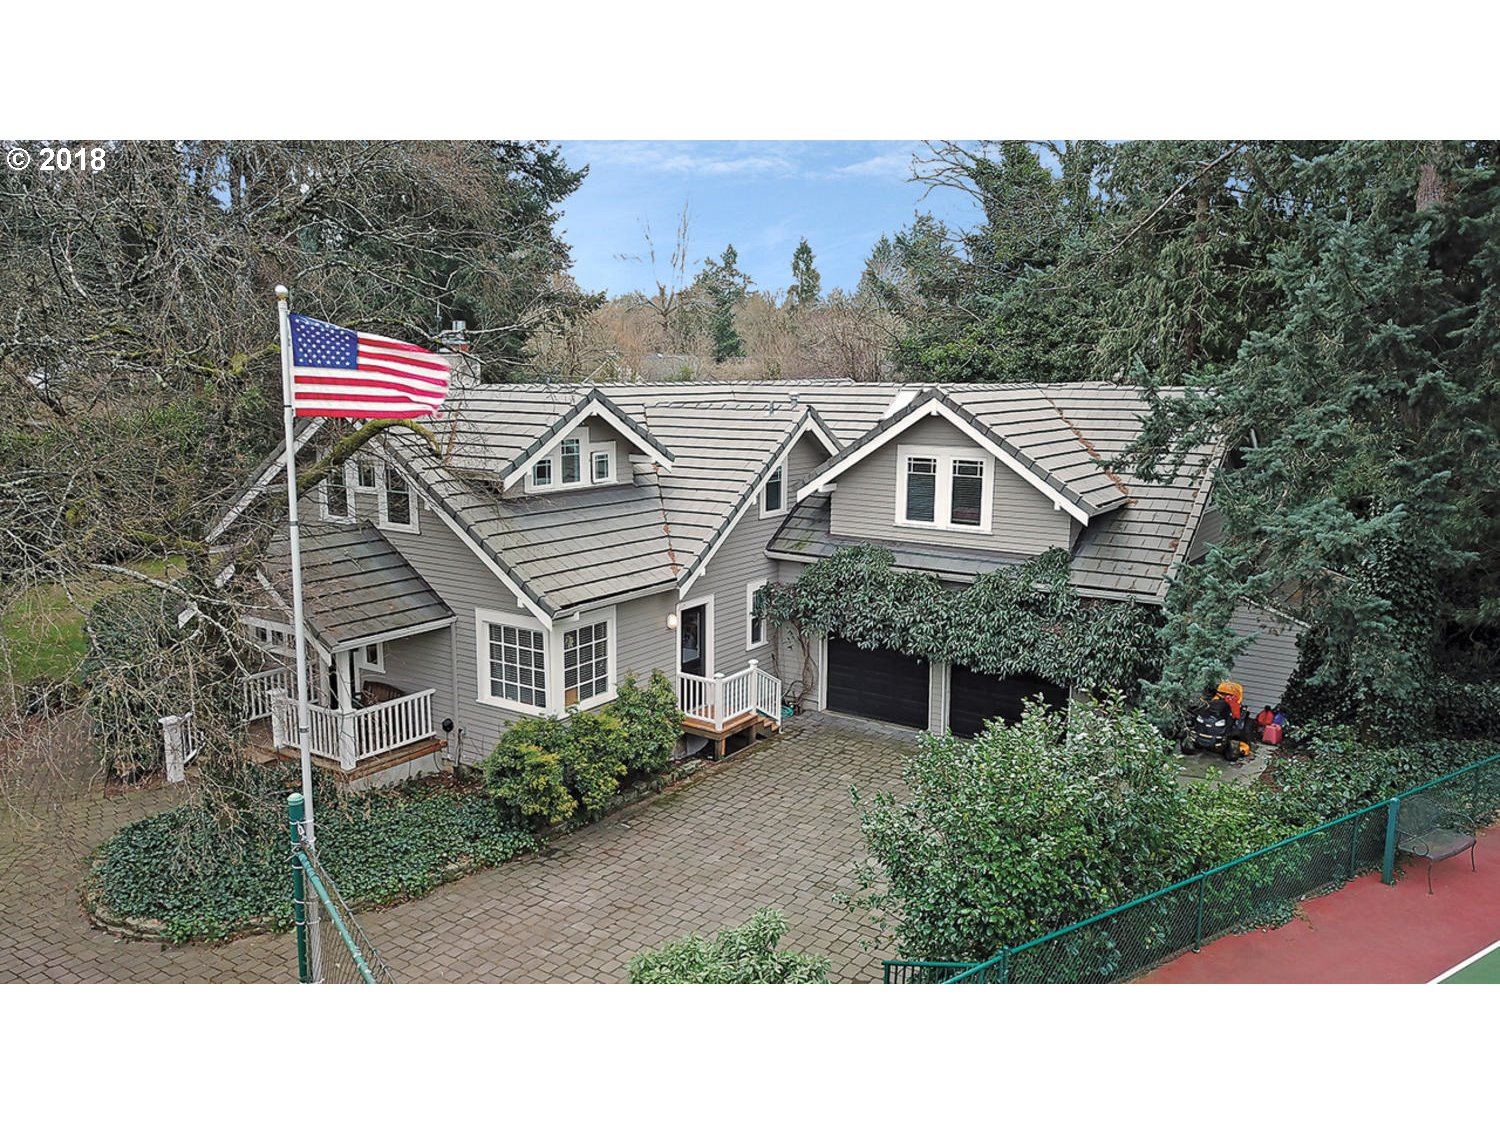 4933 LAKEVIEW BLVD, Lake Oswego, OR 97035